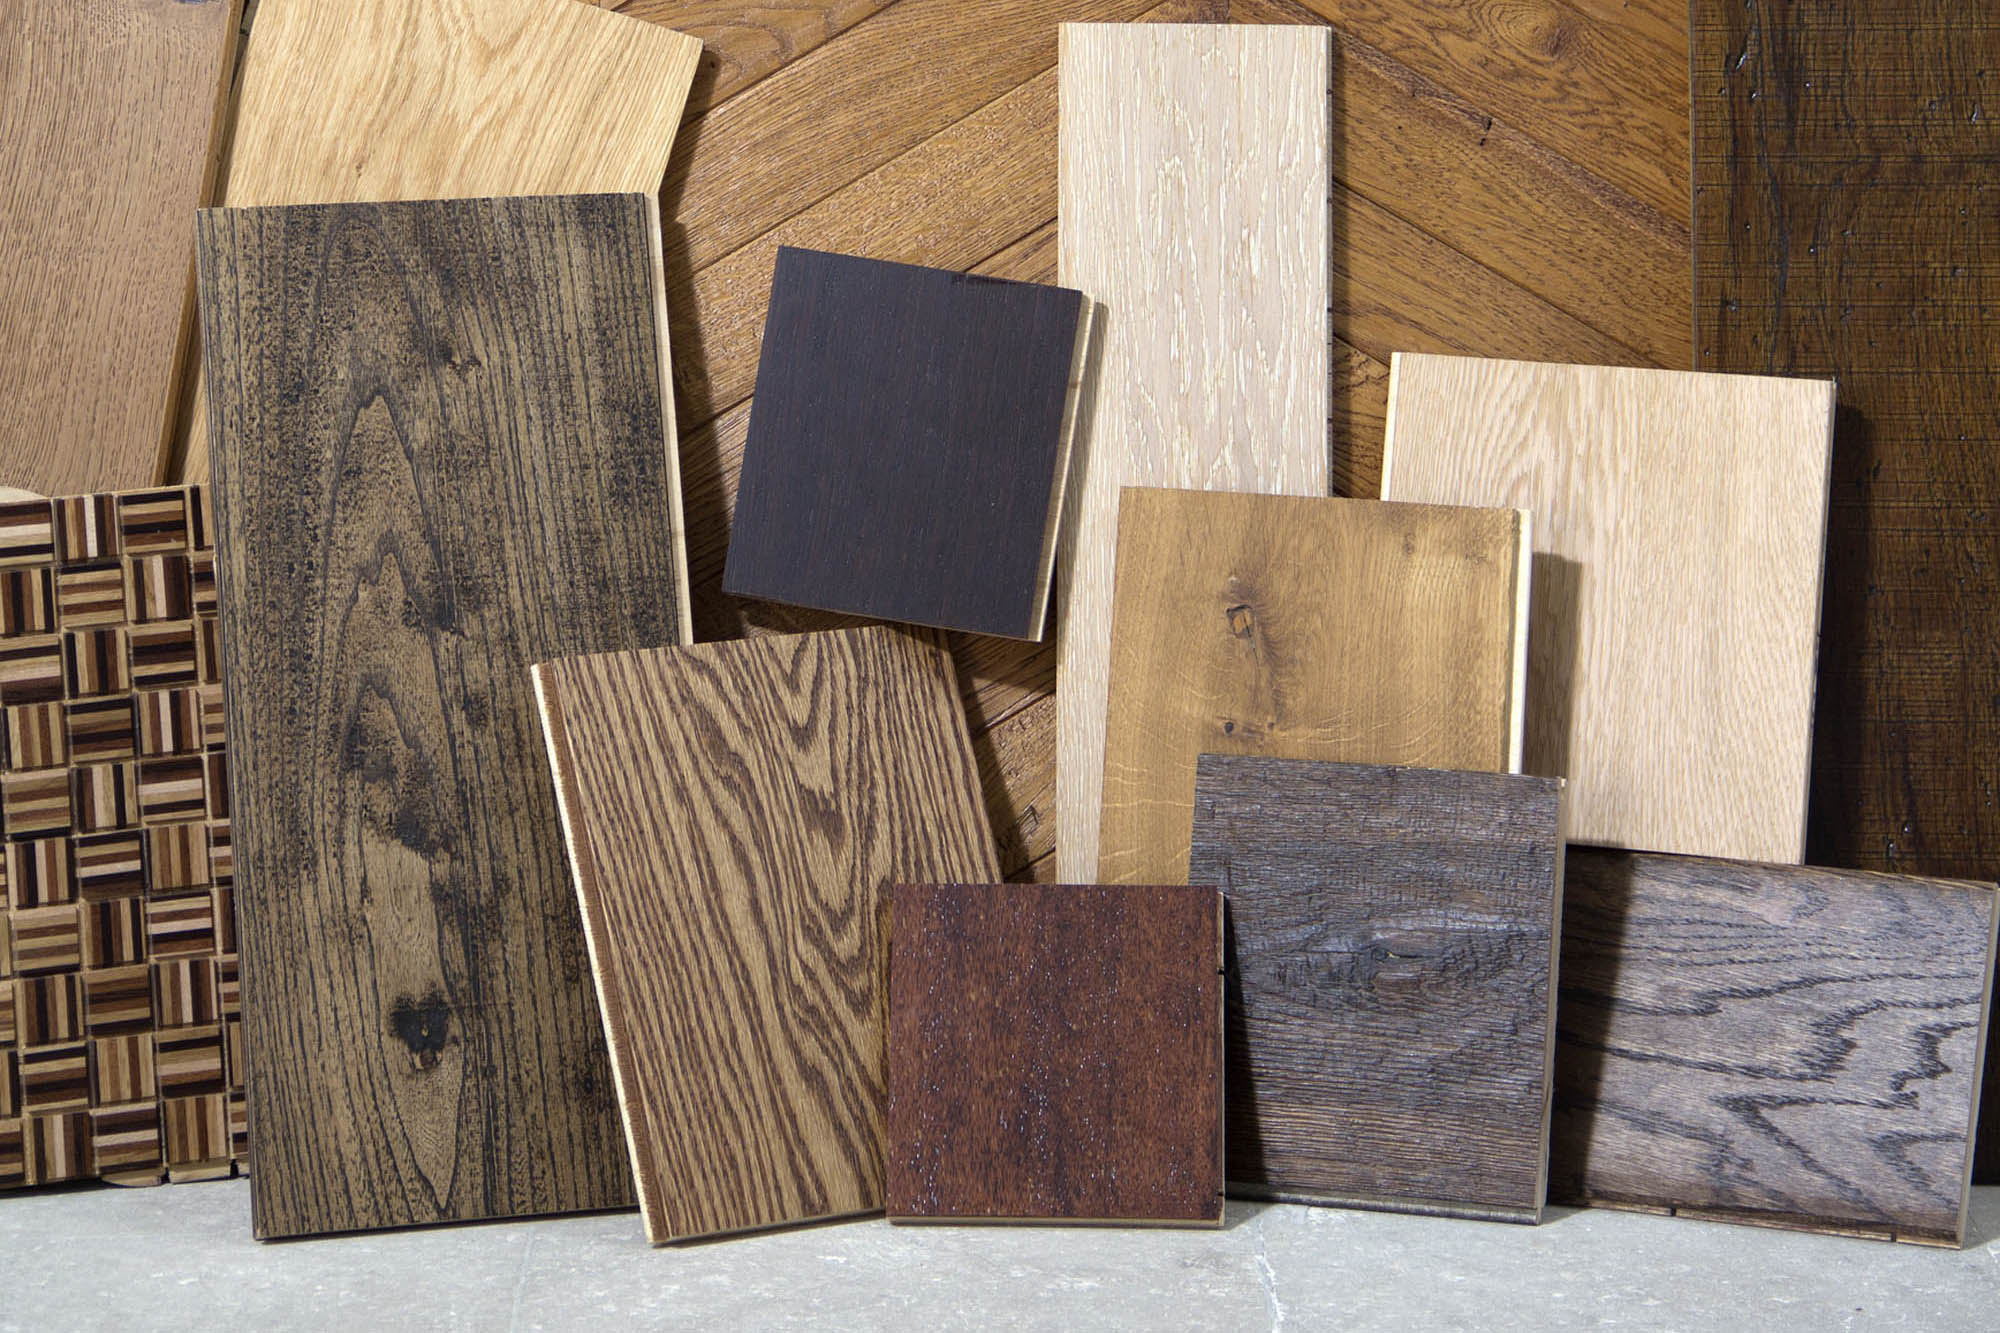 wood slabs on display to show different colors and textures